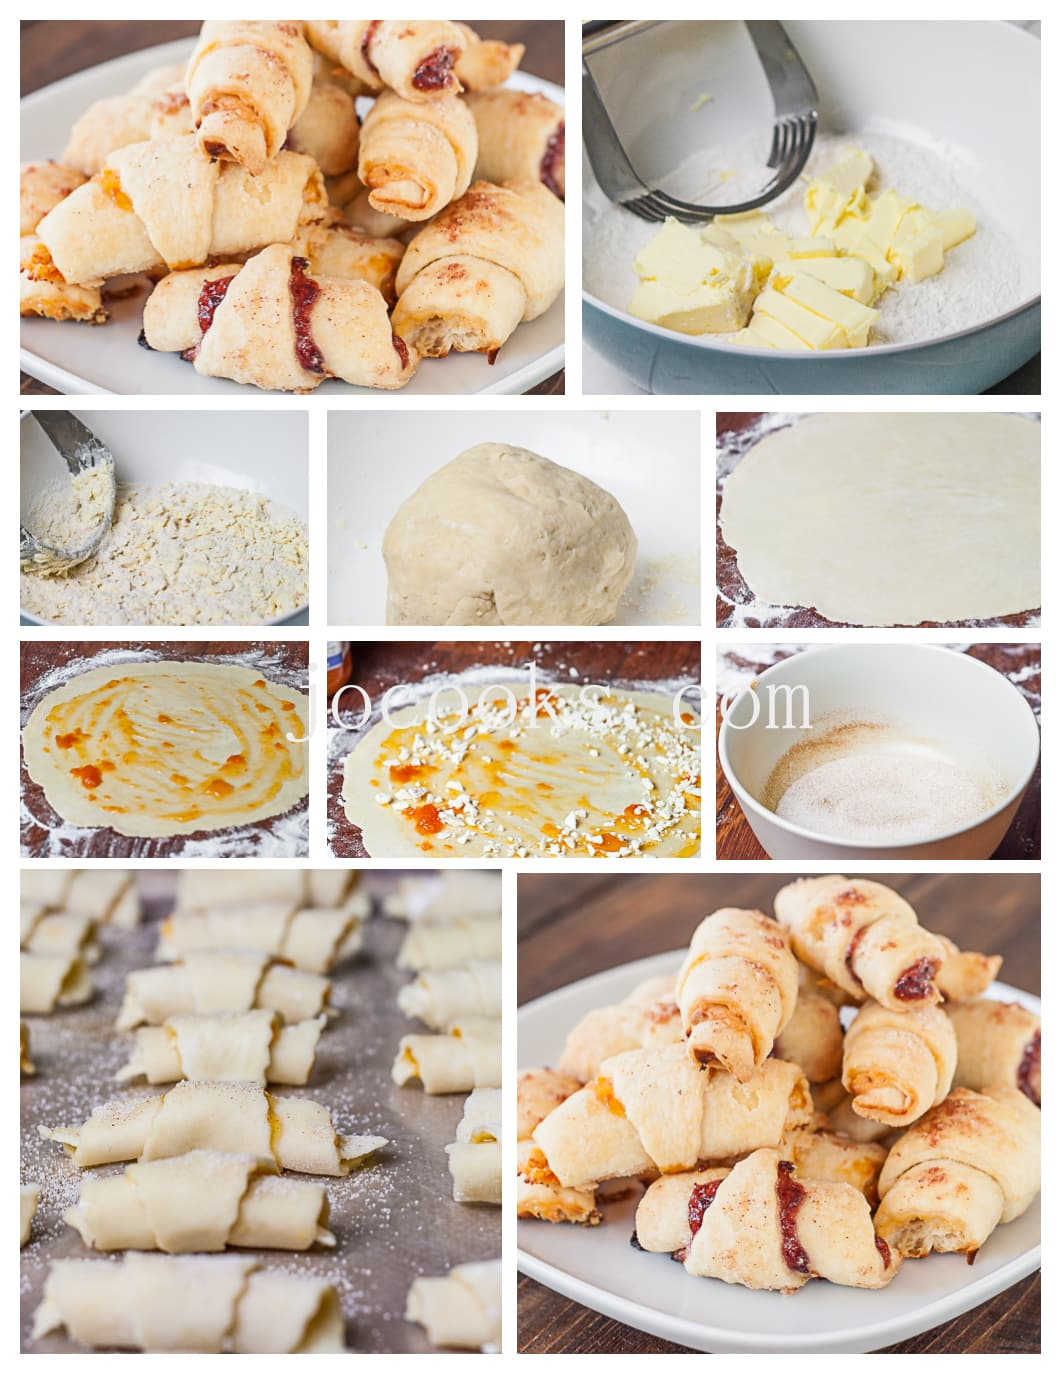 white-chocolate-and-apricot-rugelach-1-21